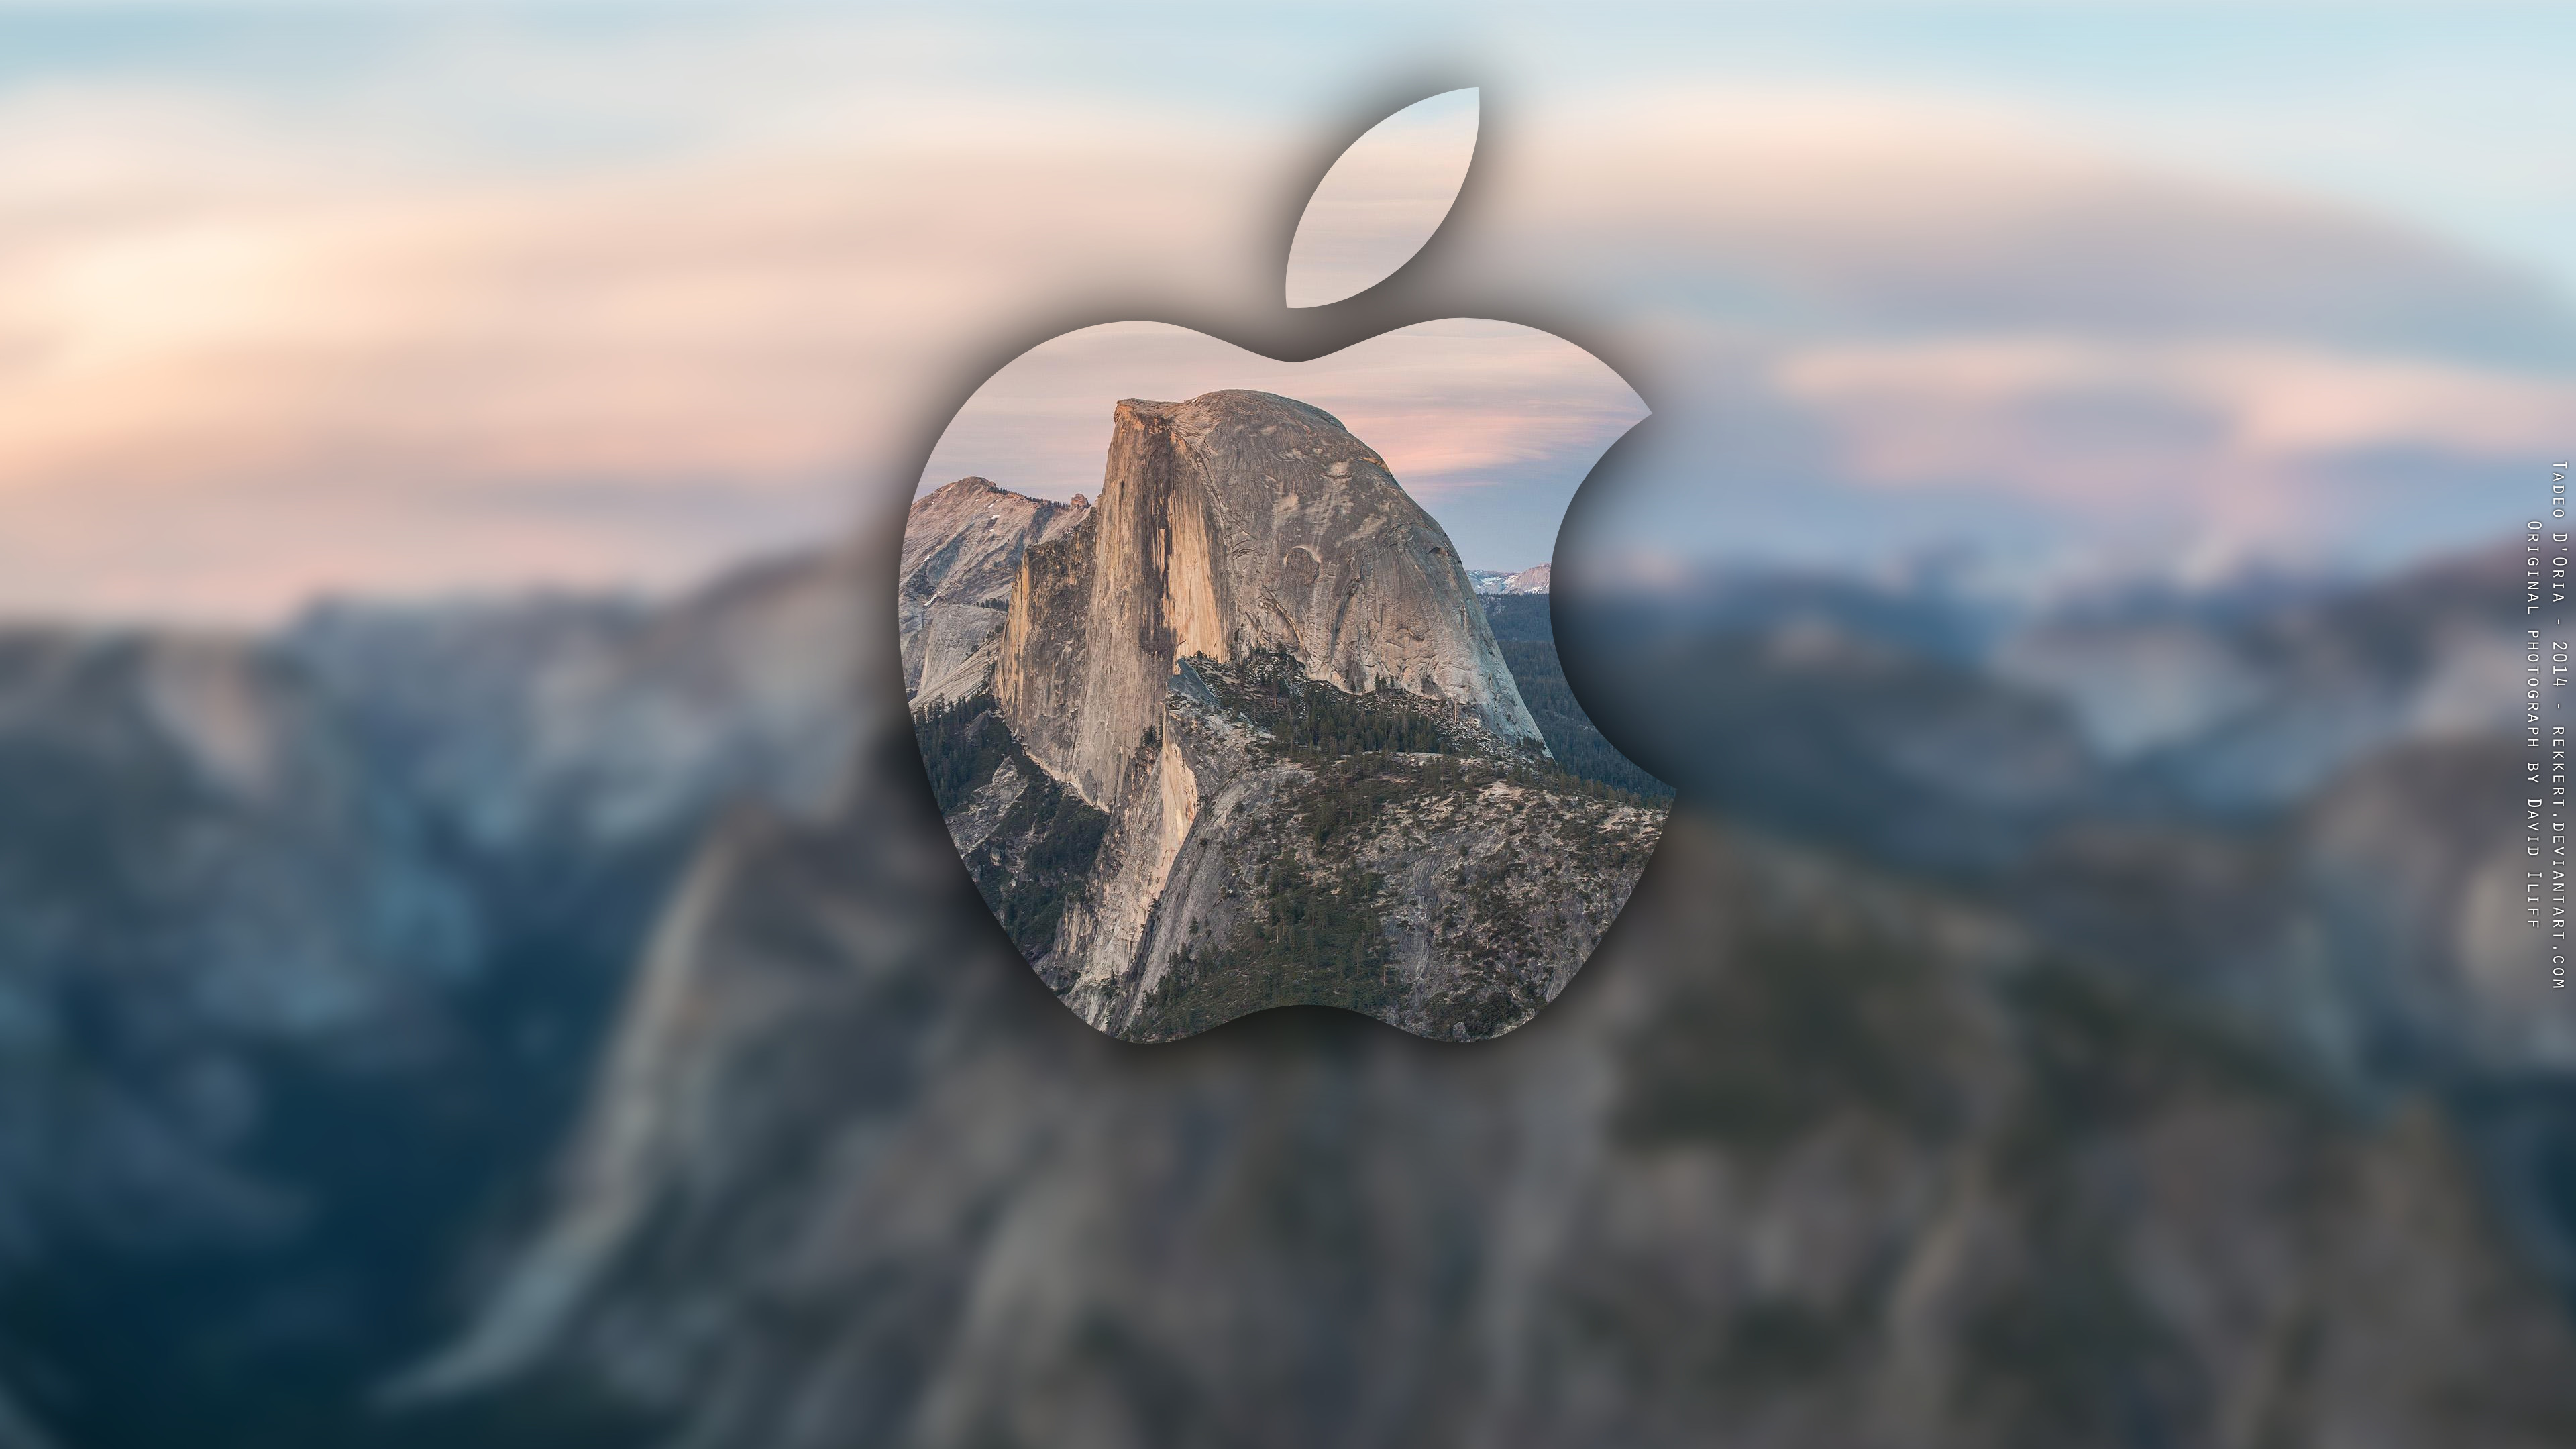 3840x2160 OS X Yosemite Wallpaper by Rekkert on DeviantArt